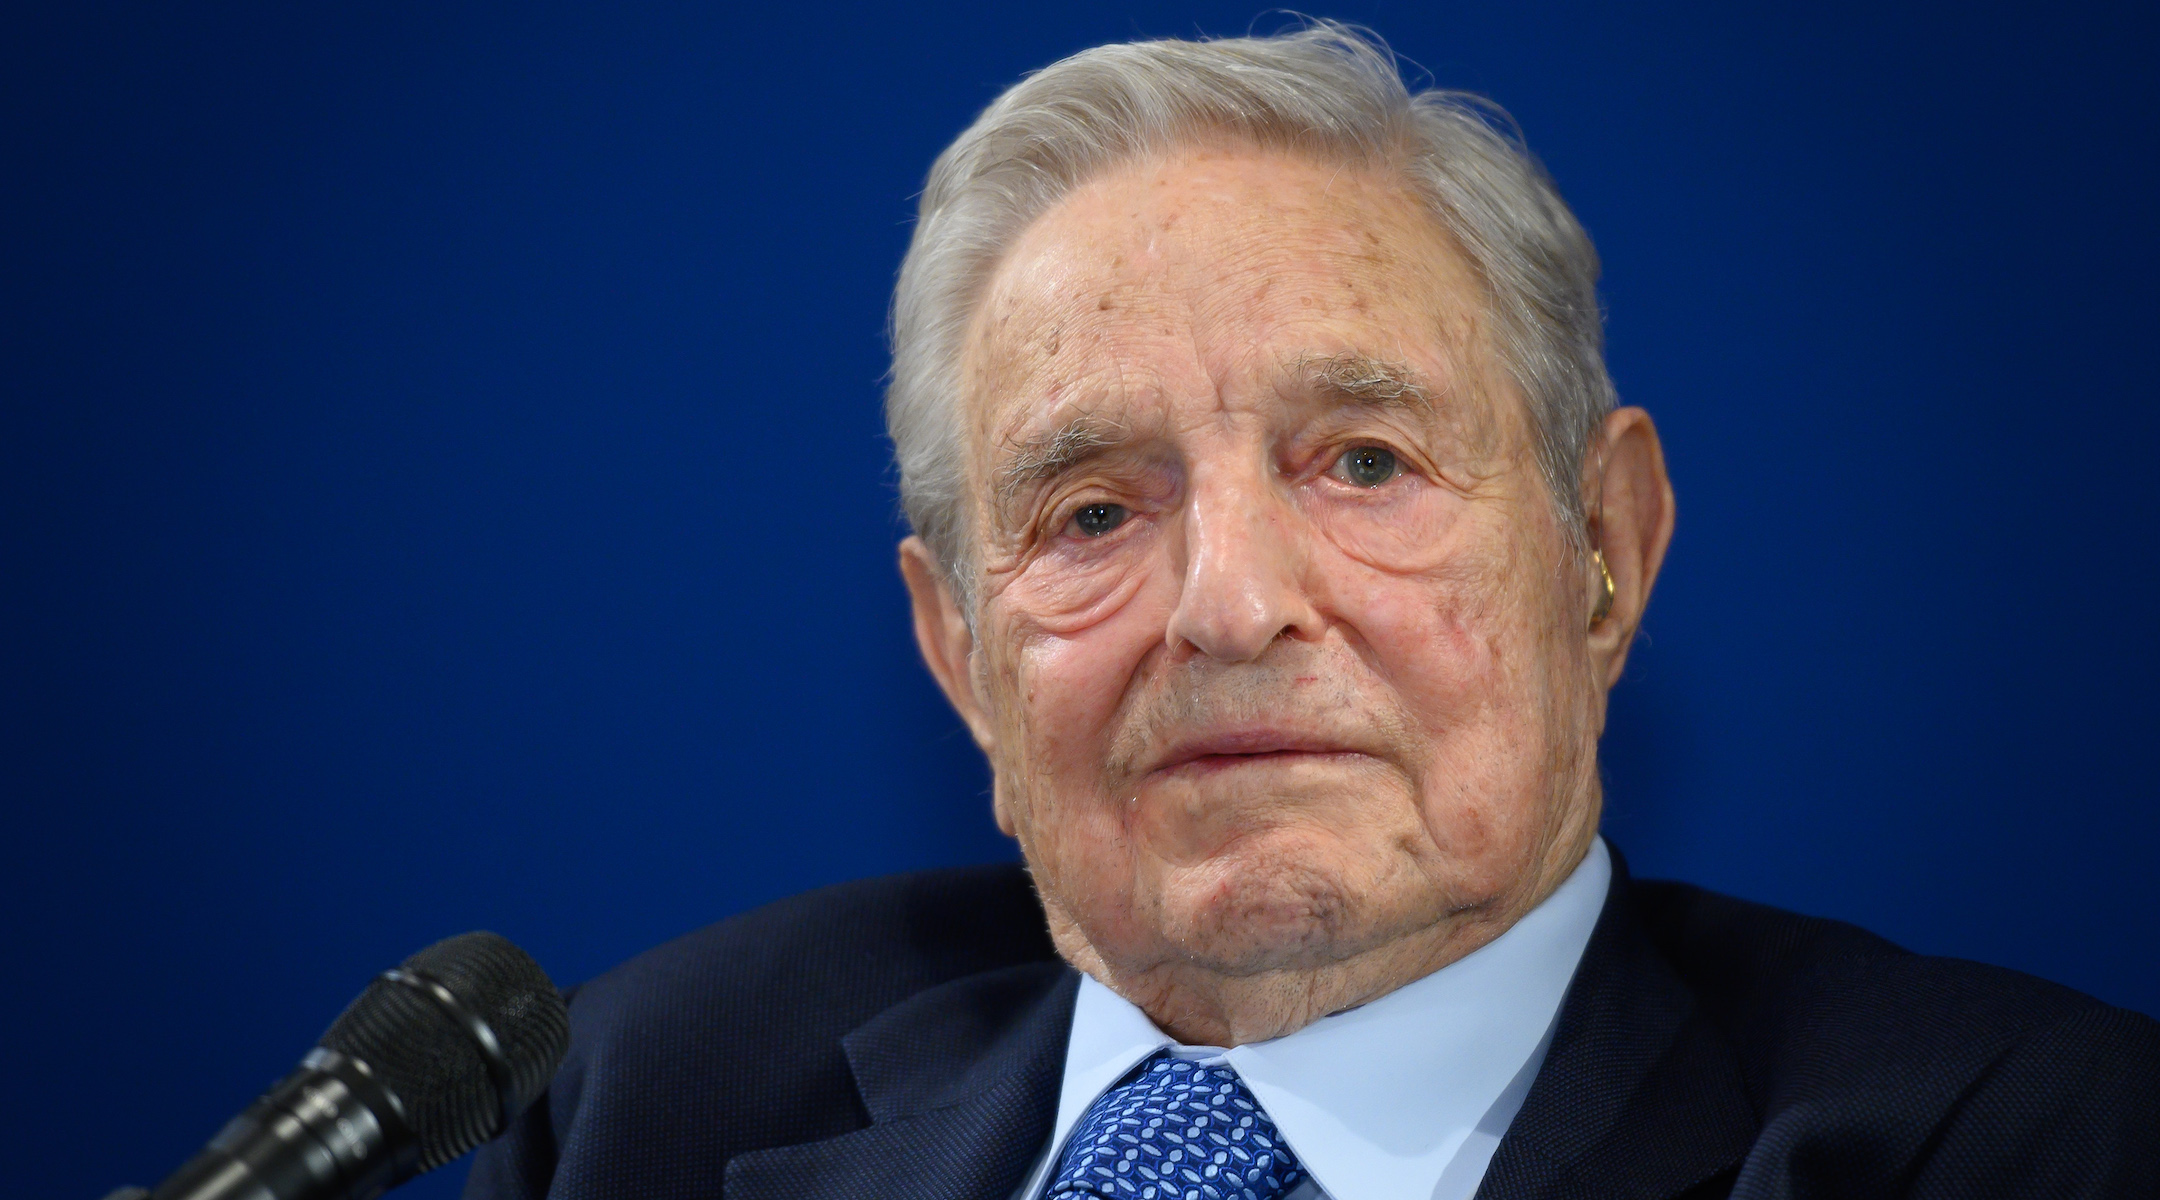 George Soros, a Jewish-American financier and liberal philanthropist pictured here in January, has donated billions around the world and become a leading target of conservatives and, increasingly, anti-Semites. (Fabrice Coffrini/AFP via Getty Images)